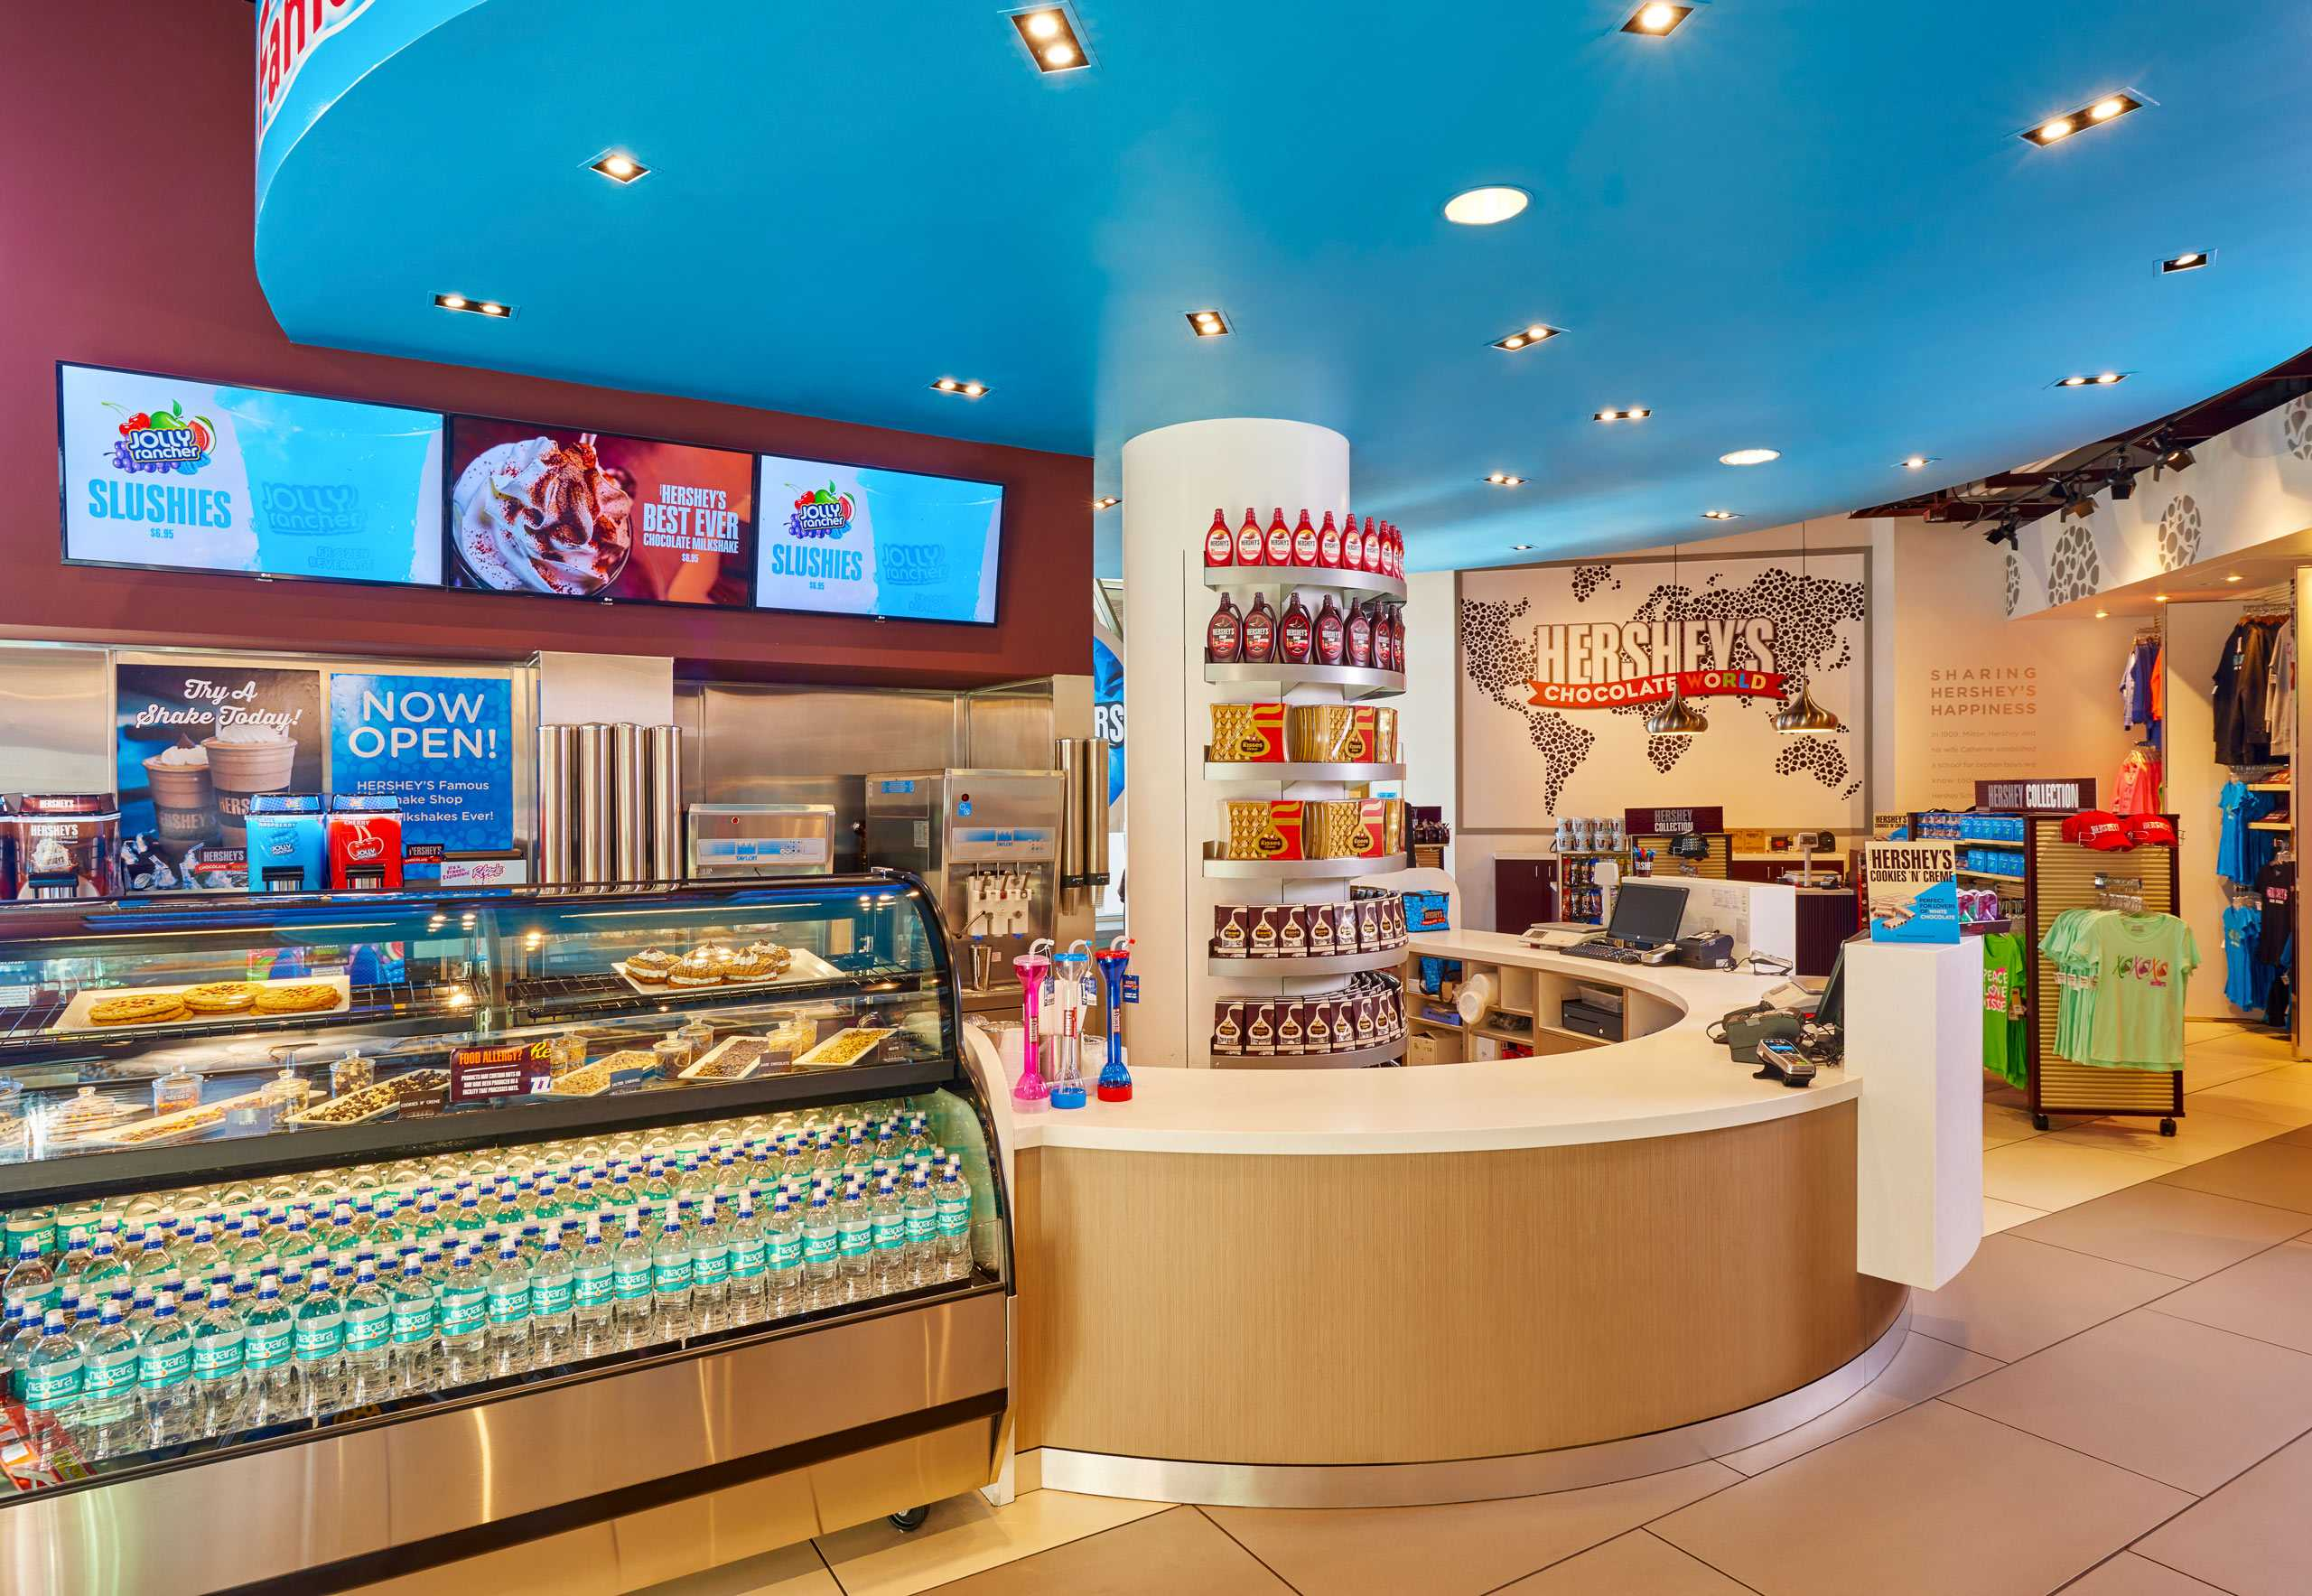 Enjoy a Hershey's Chocolate Shake or a Malt at the Milk Shake Shop at Hershey's World Las Vegas!